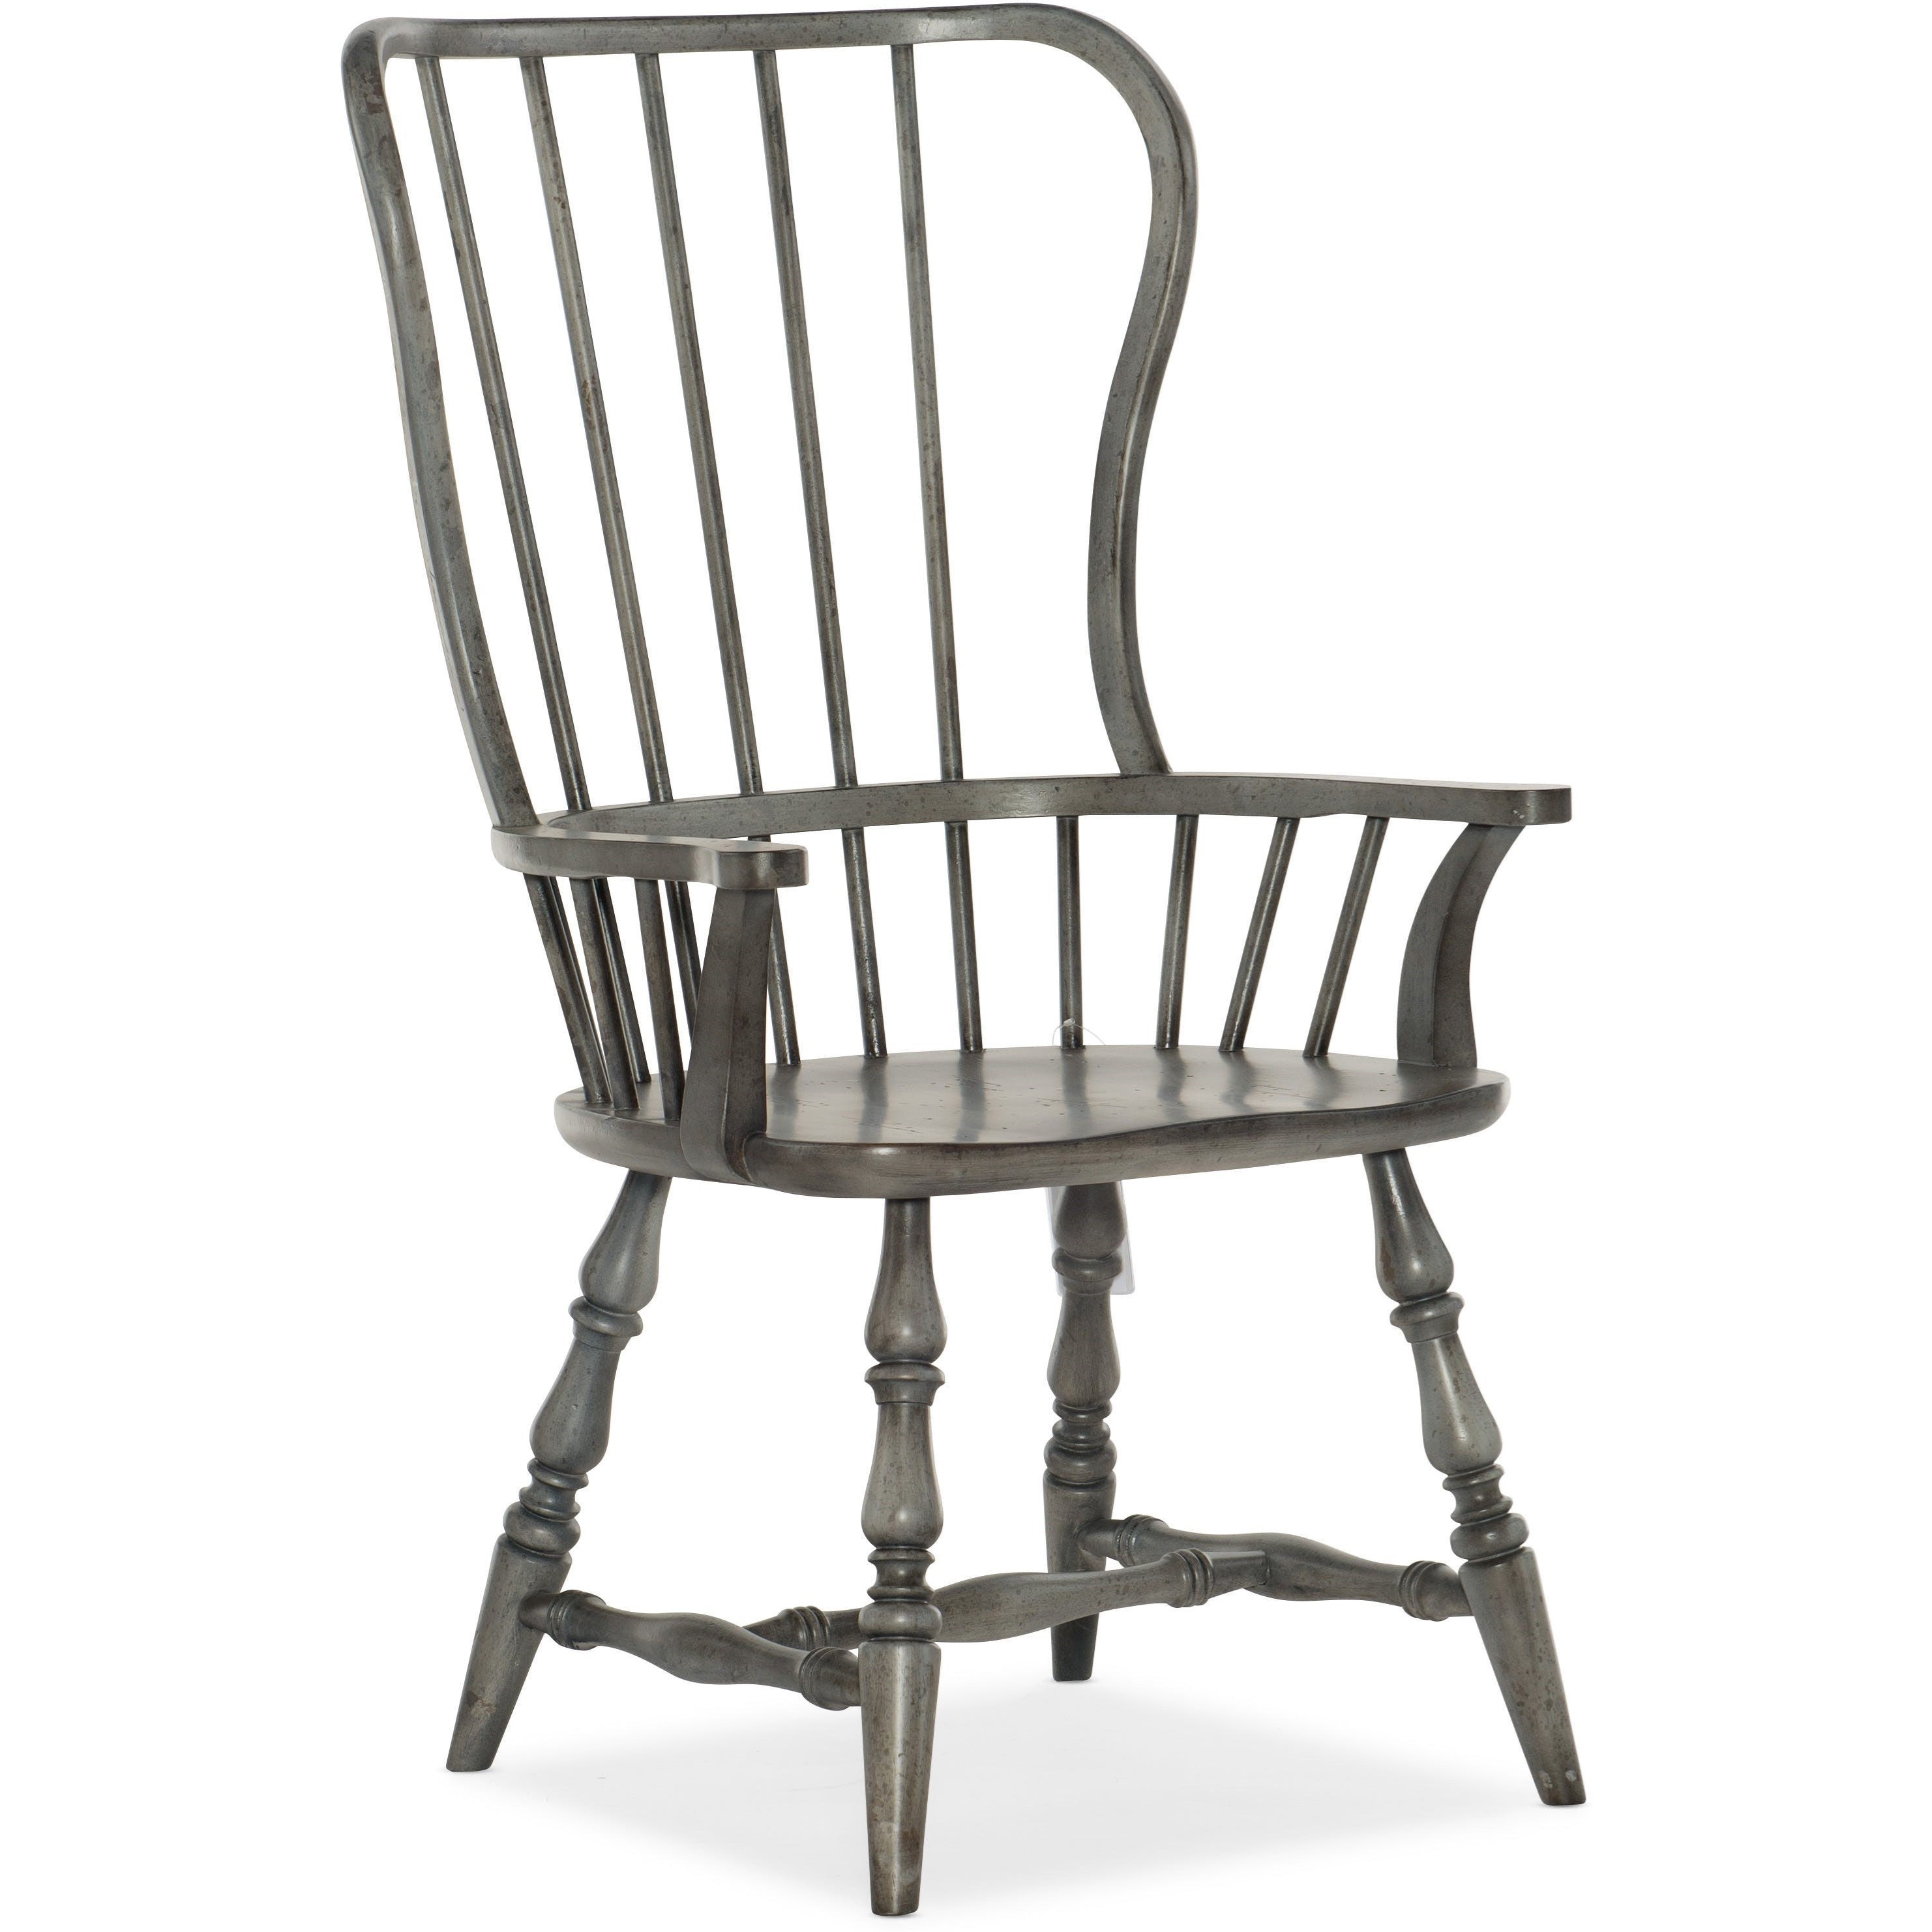 Ciao Bella Spindle Back Arm Chair by Hooker Furniture at Stoney Creek Furniture